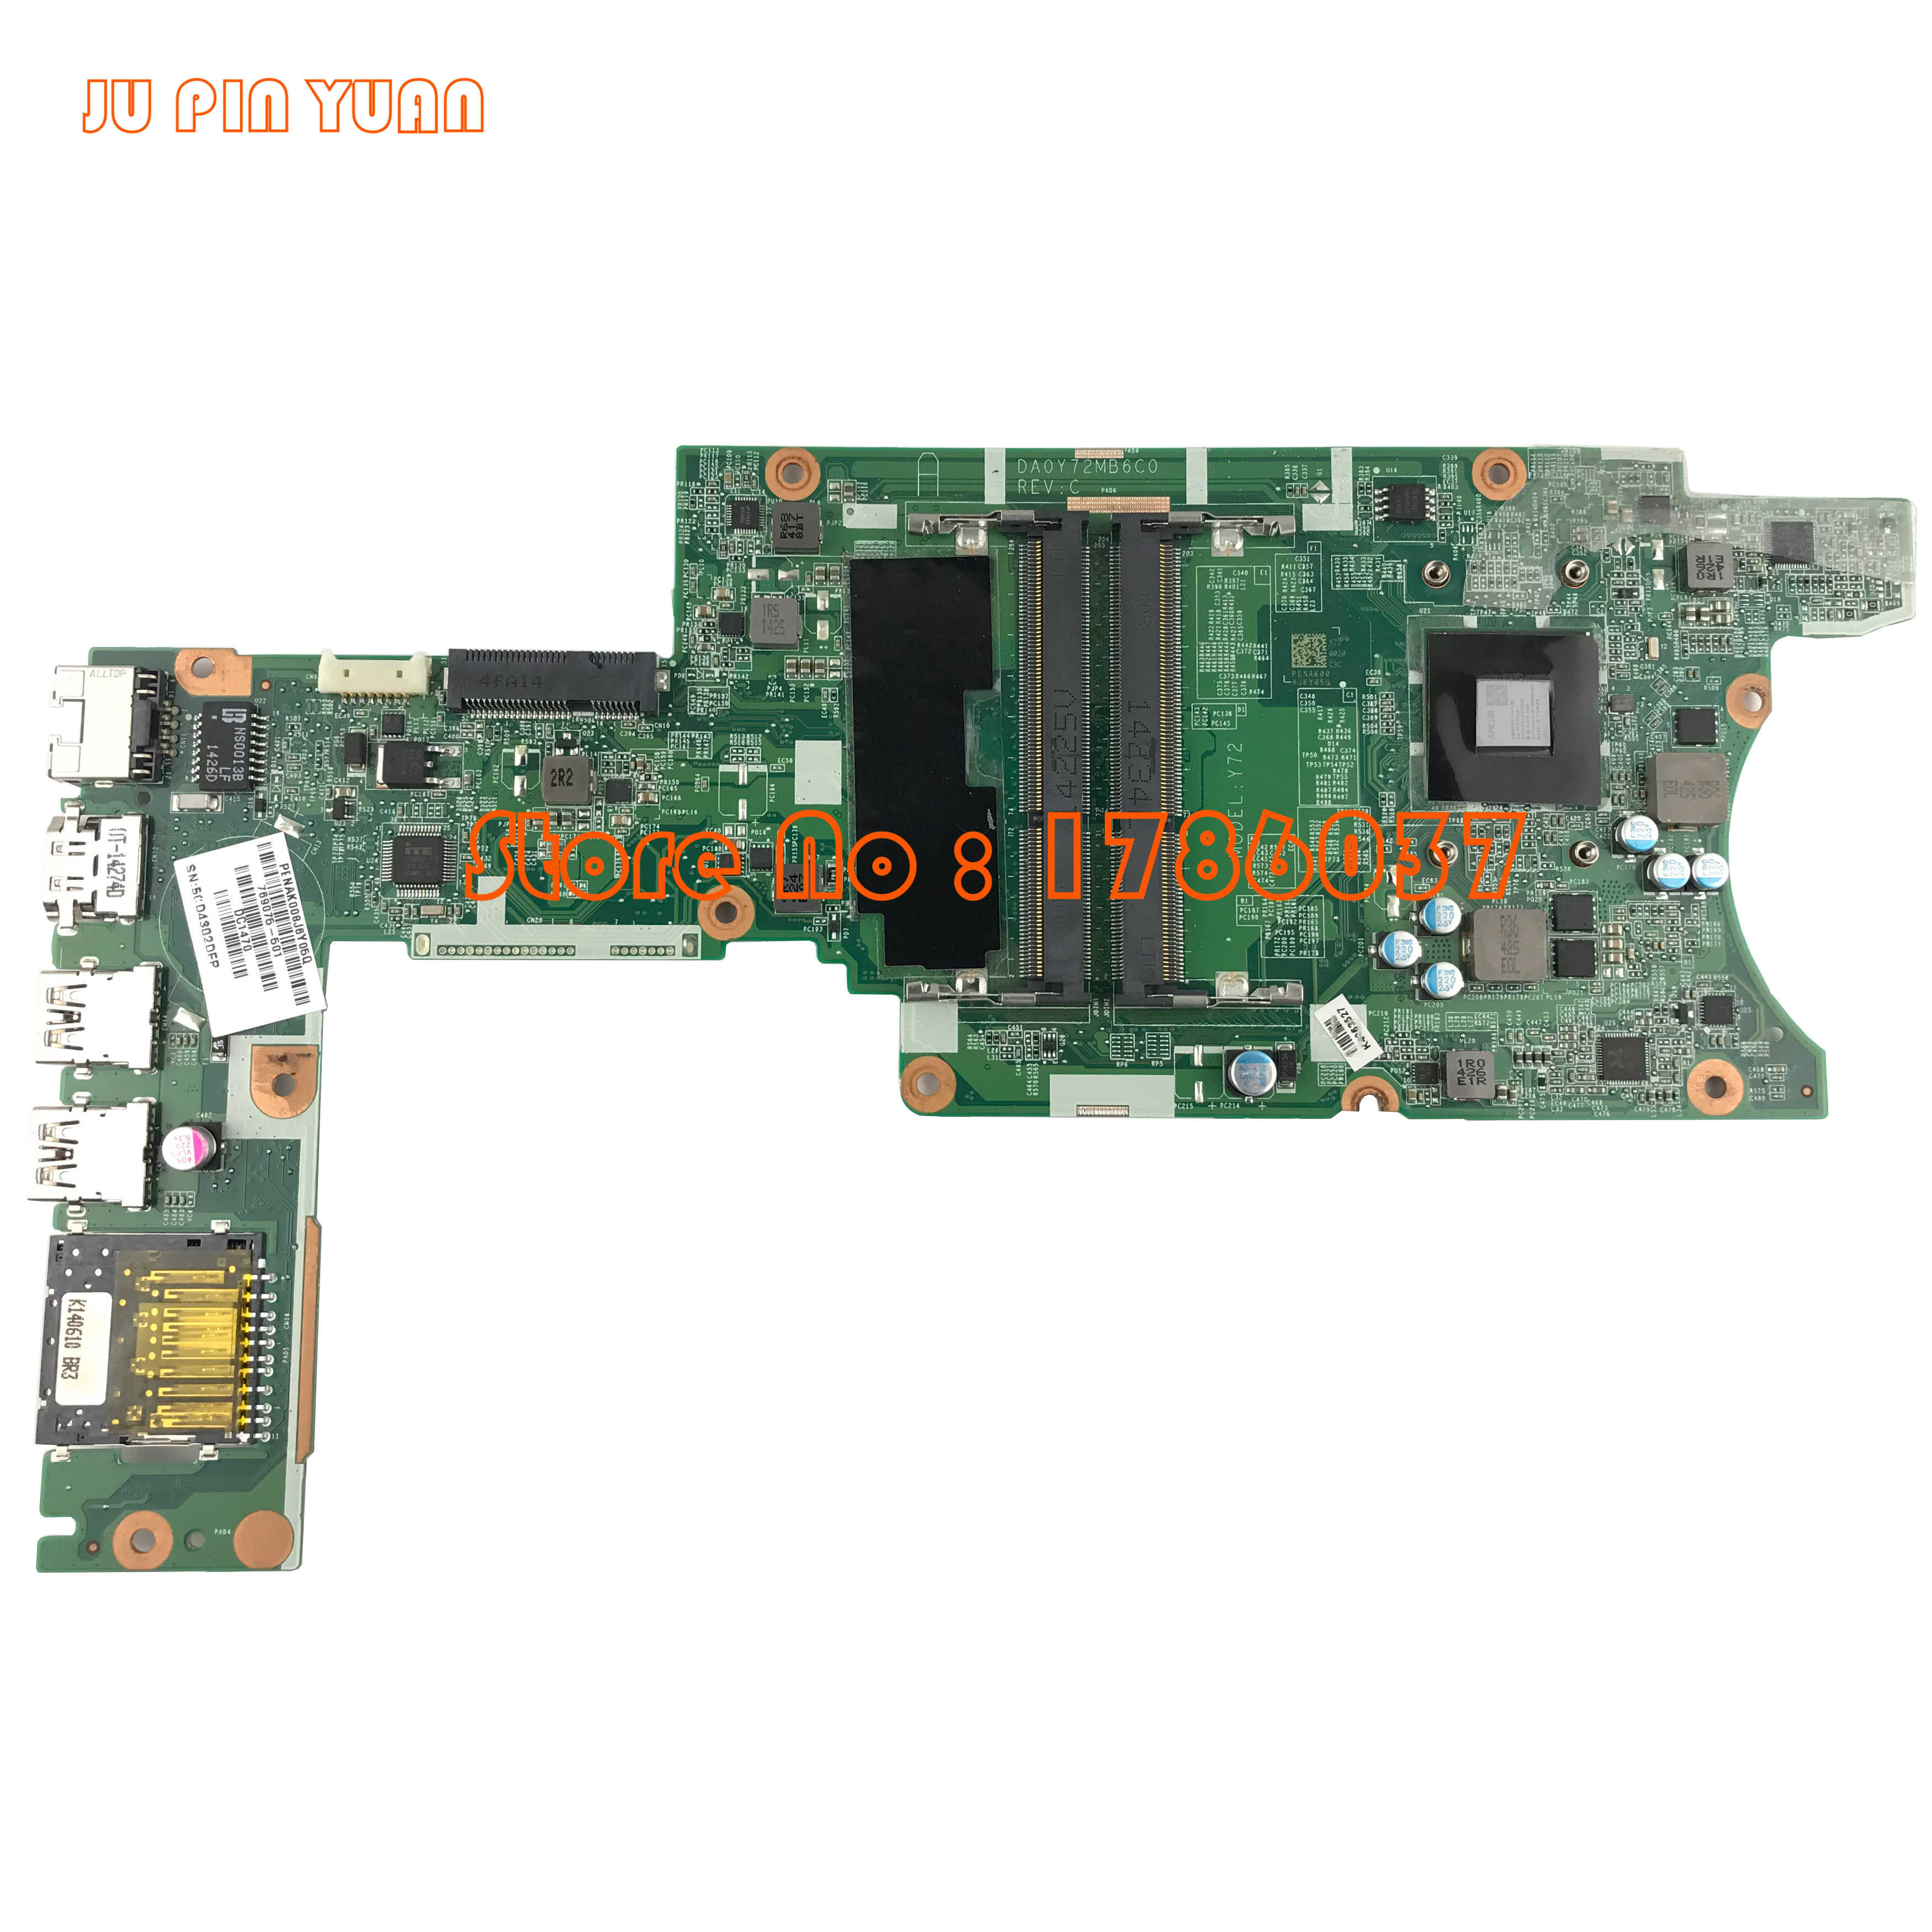 JU PIN YUAN 769075-501 769075-001 DA0Y72MB6C0 Y72 for HP Pavilion X360 13-a Series motherboard with A8-6410 All fully TestedJU PIN YUAN 769075-501 769075-001 DA0Y72MB6C0 Y72 for HP Pavilion X360 13-a Series motherboard with A8-6410 All fully Tested